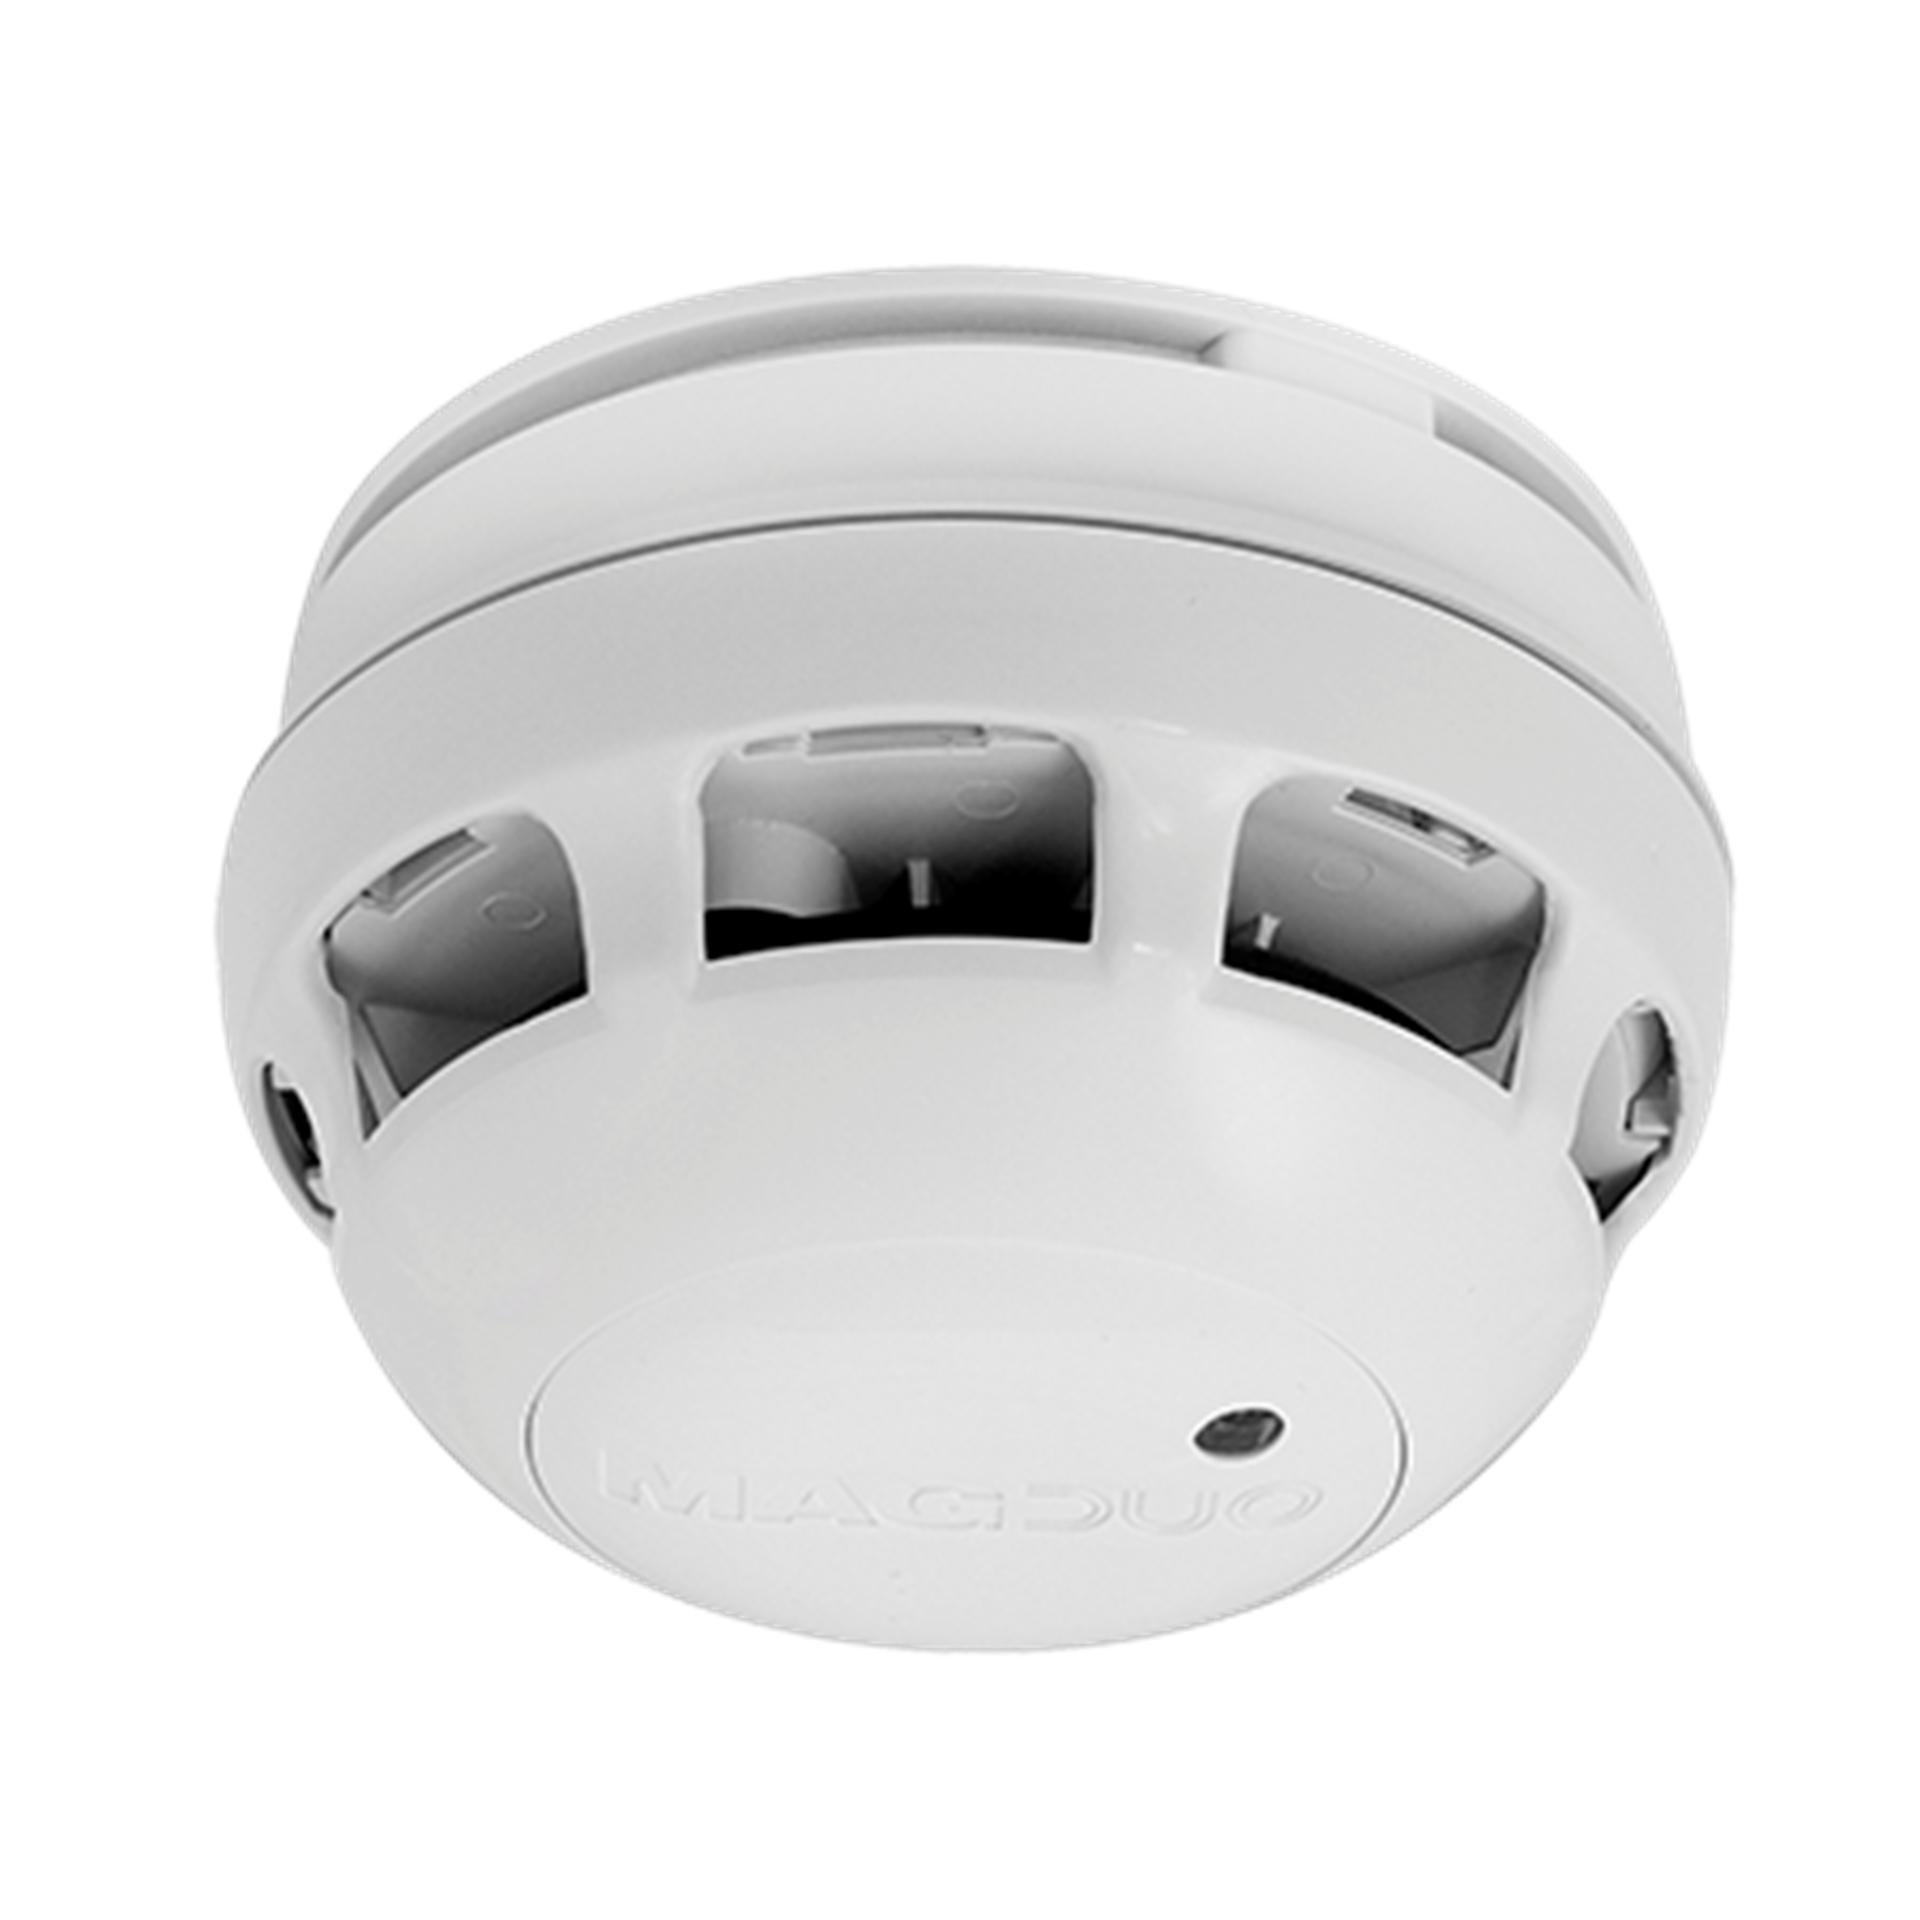 MAGDUOSHD FlexiPoint Detector for Fire Detection